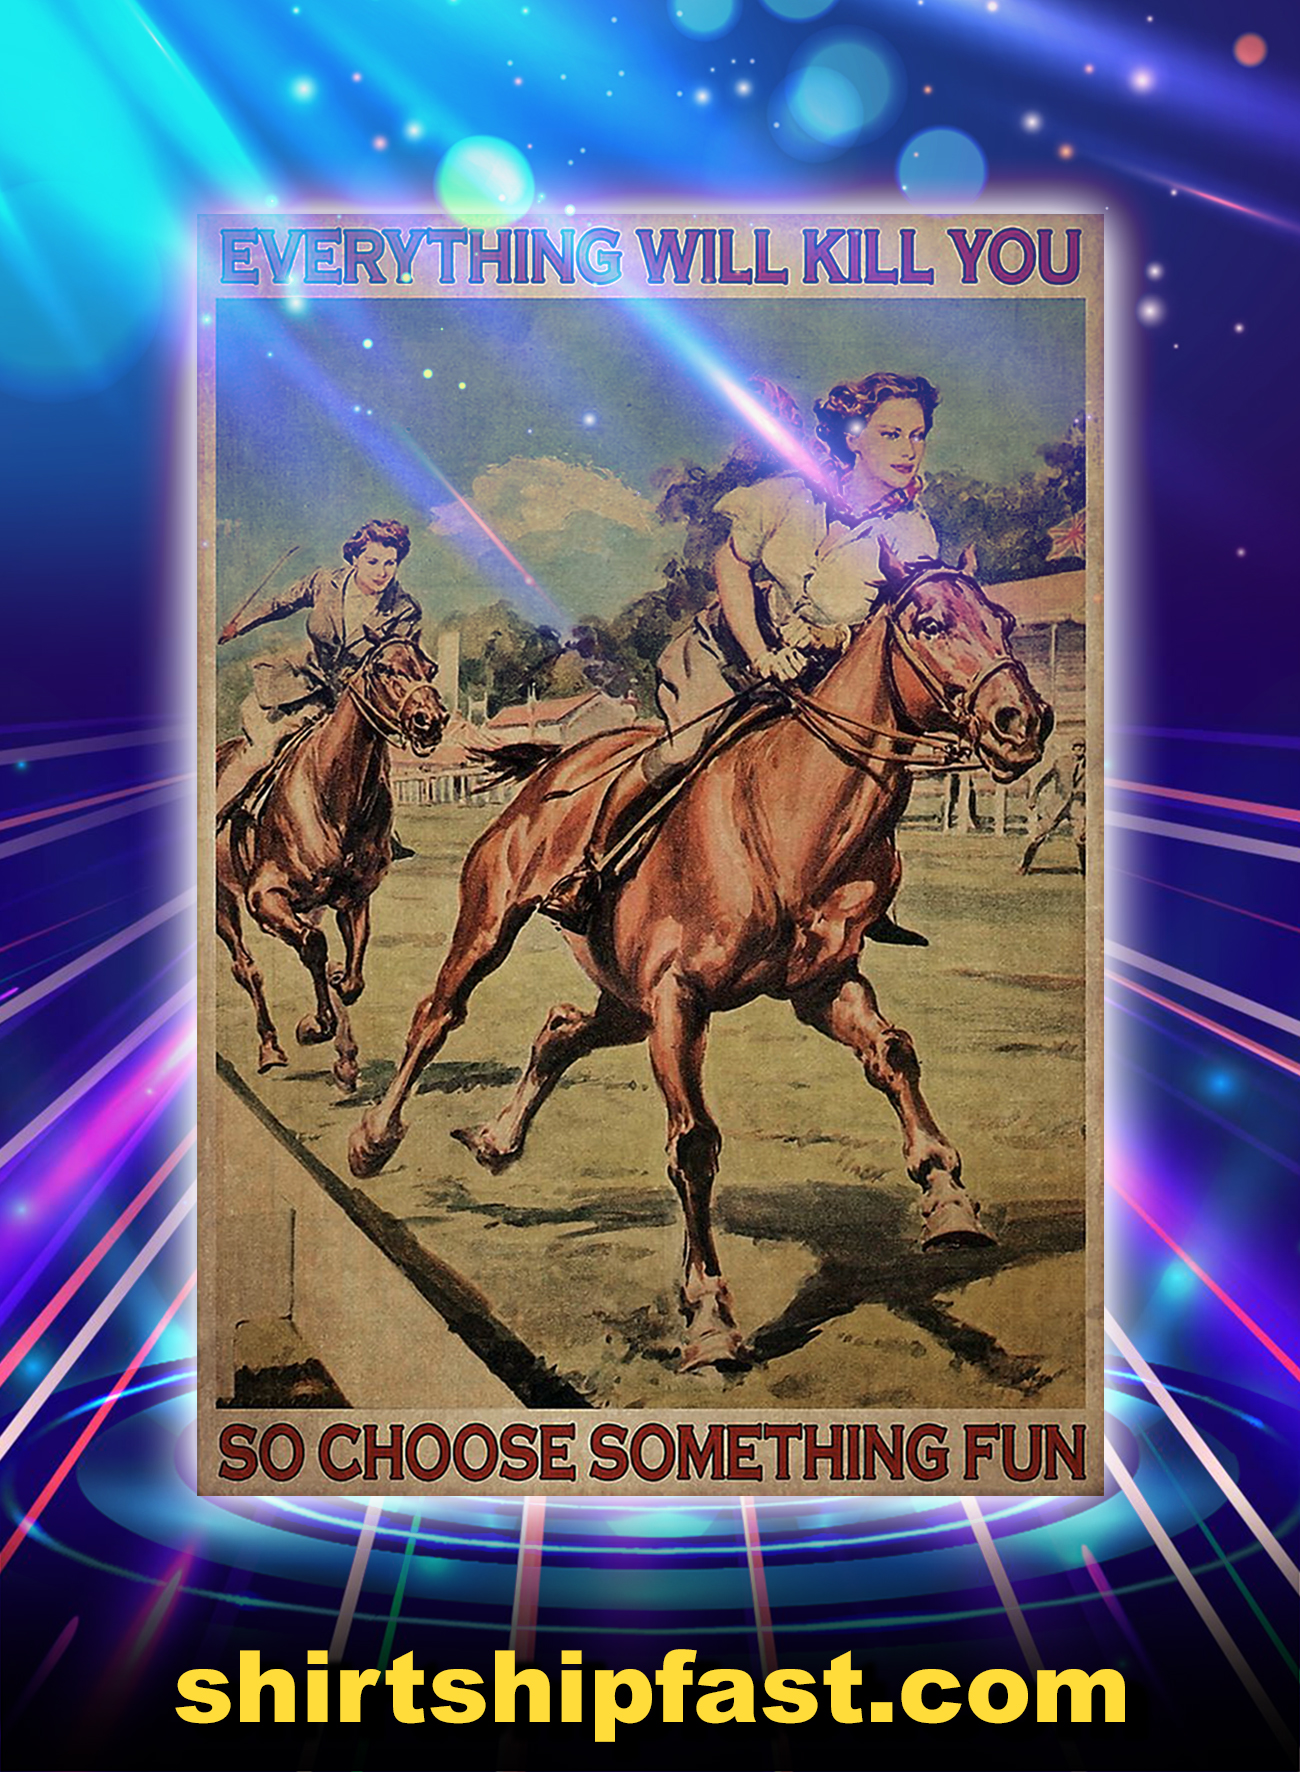 Female horse racing everything will kill you so choose something fun poster - A1